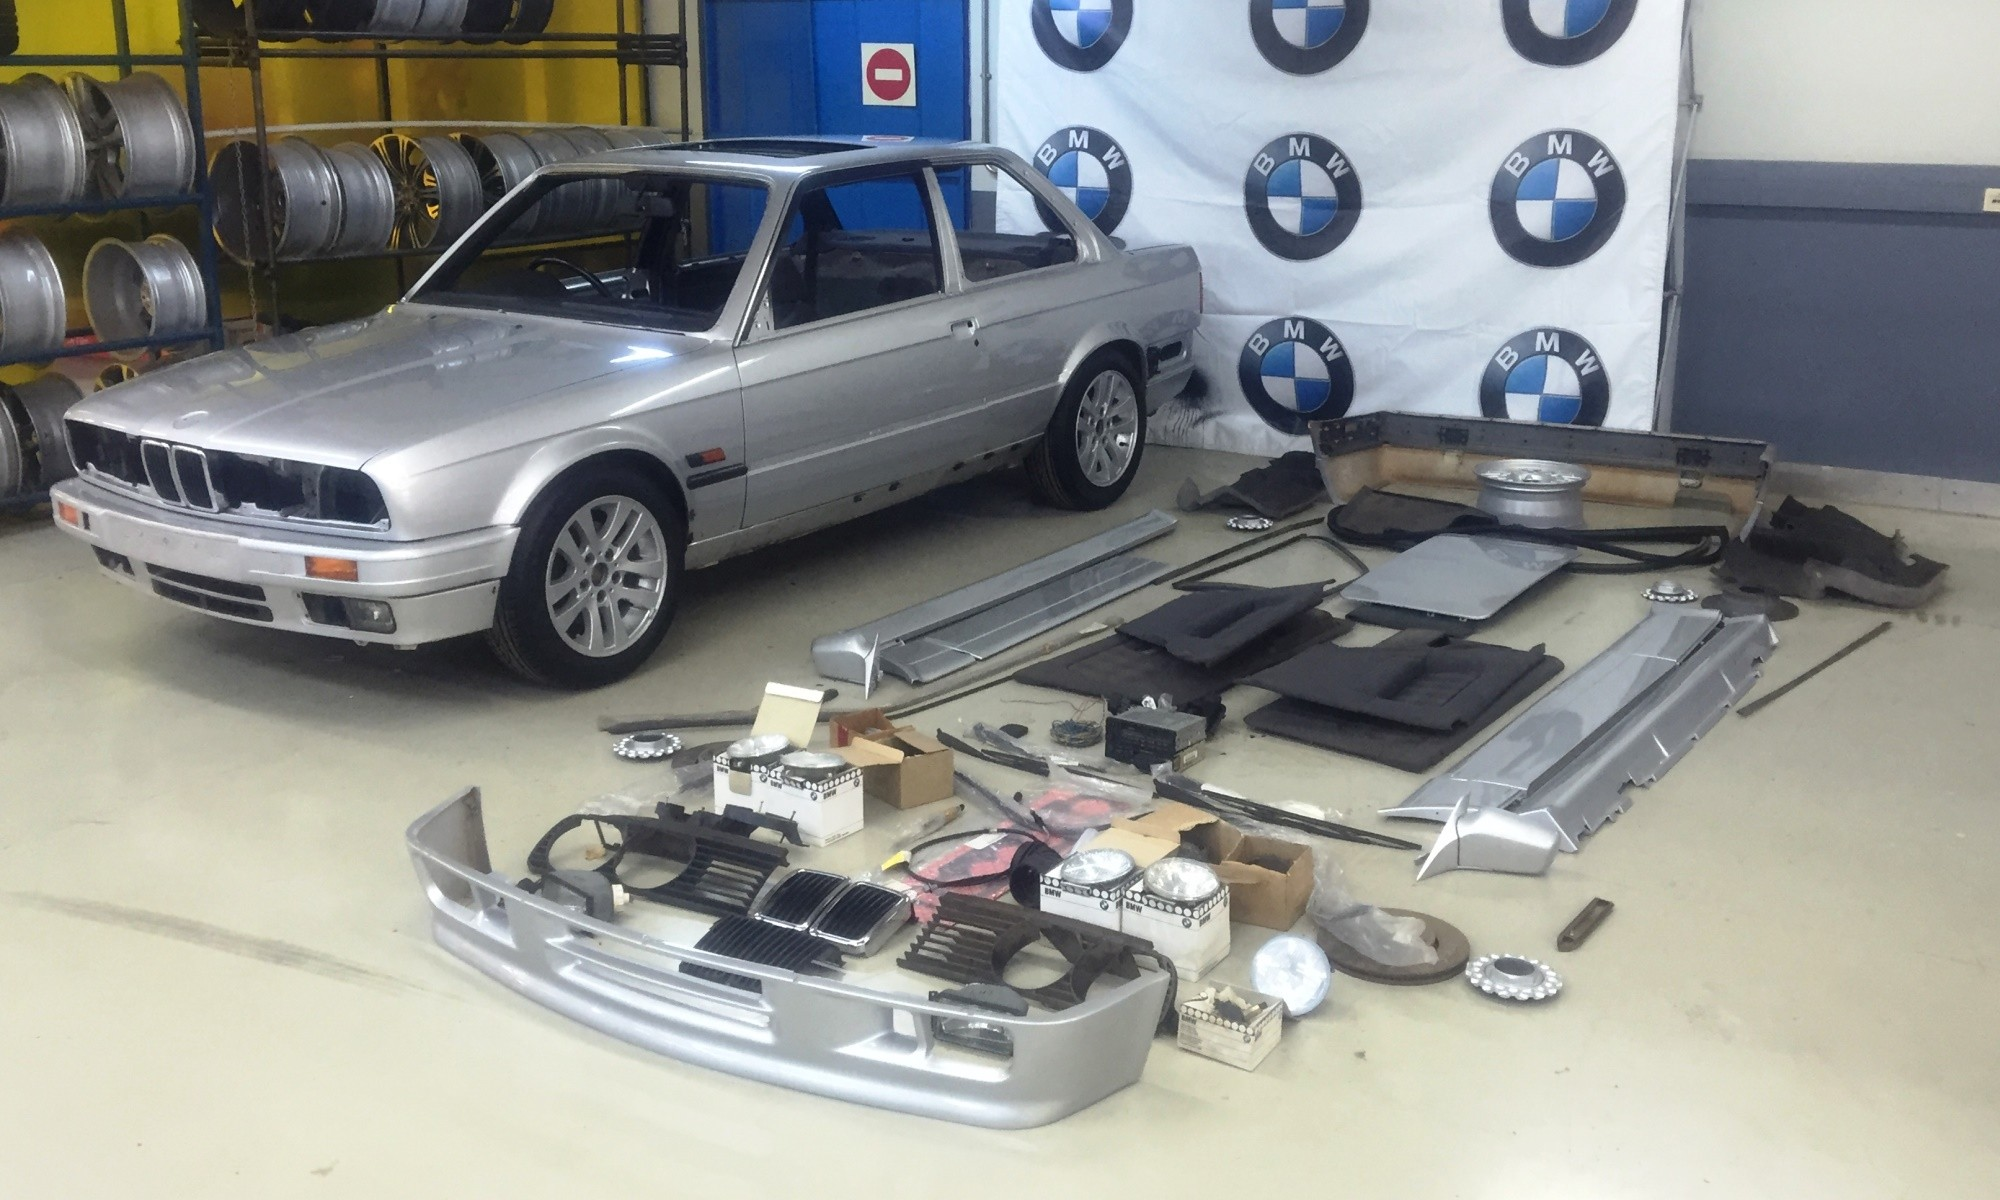 The BMW 325iS was a sorry sight to start with